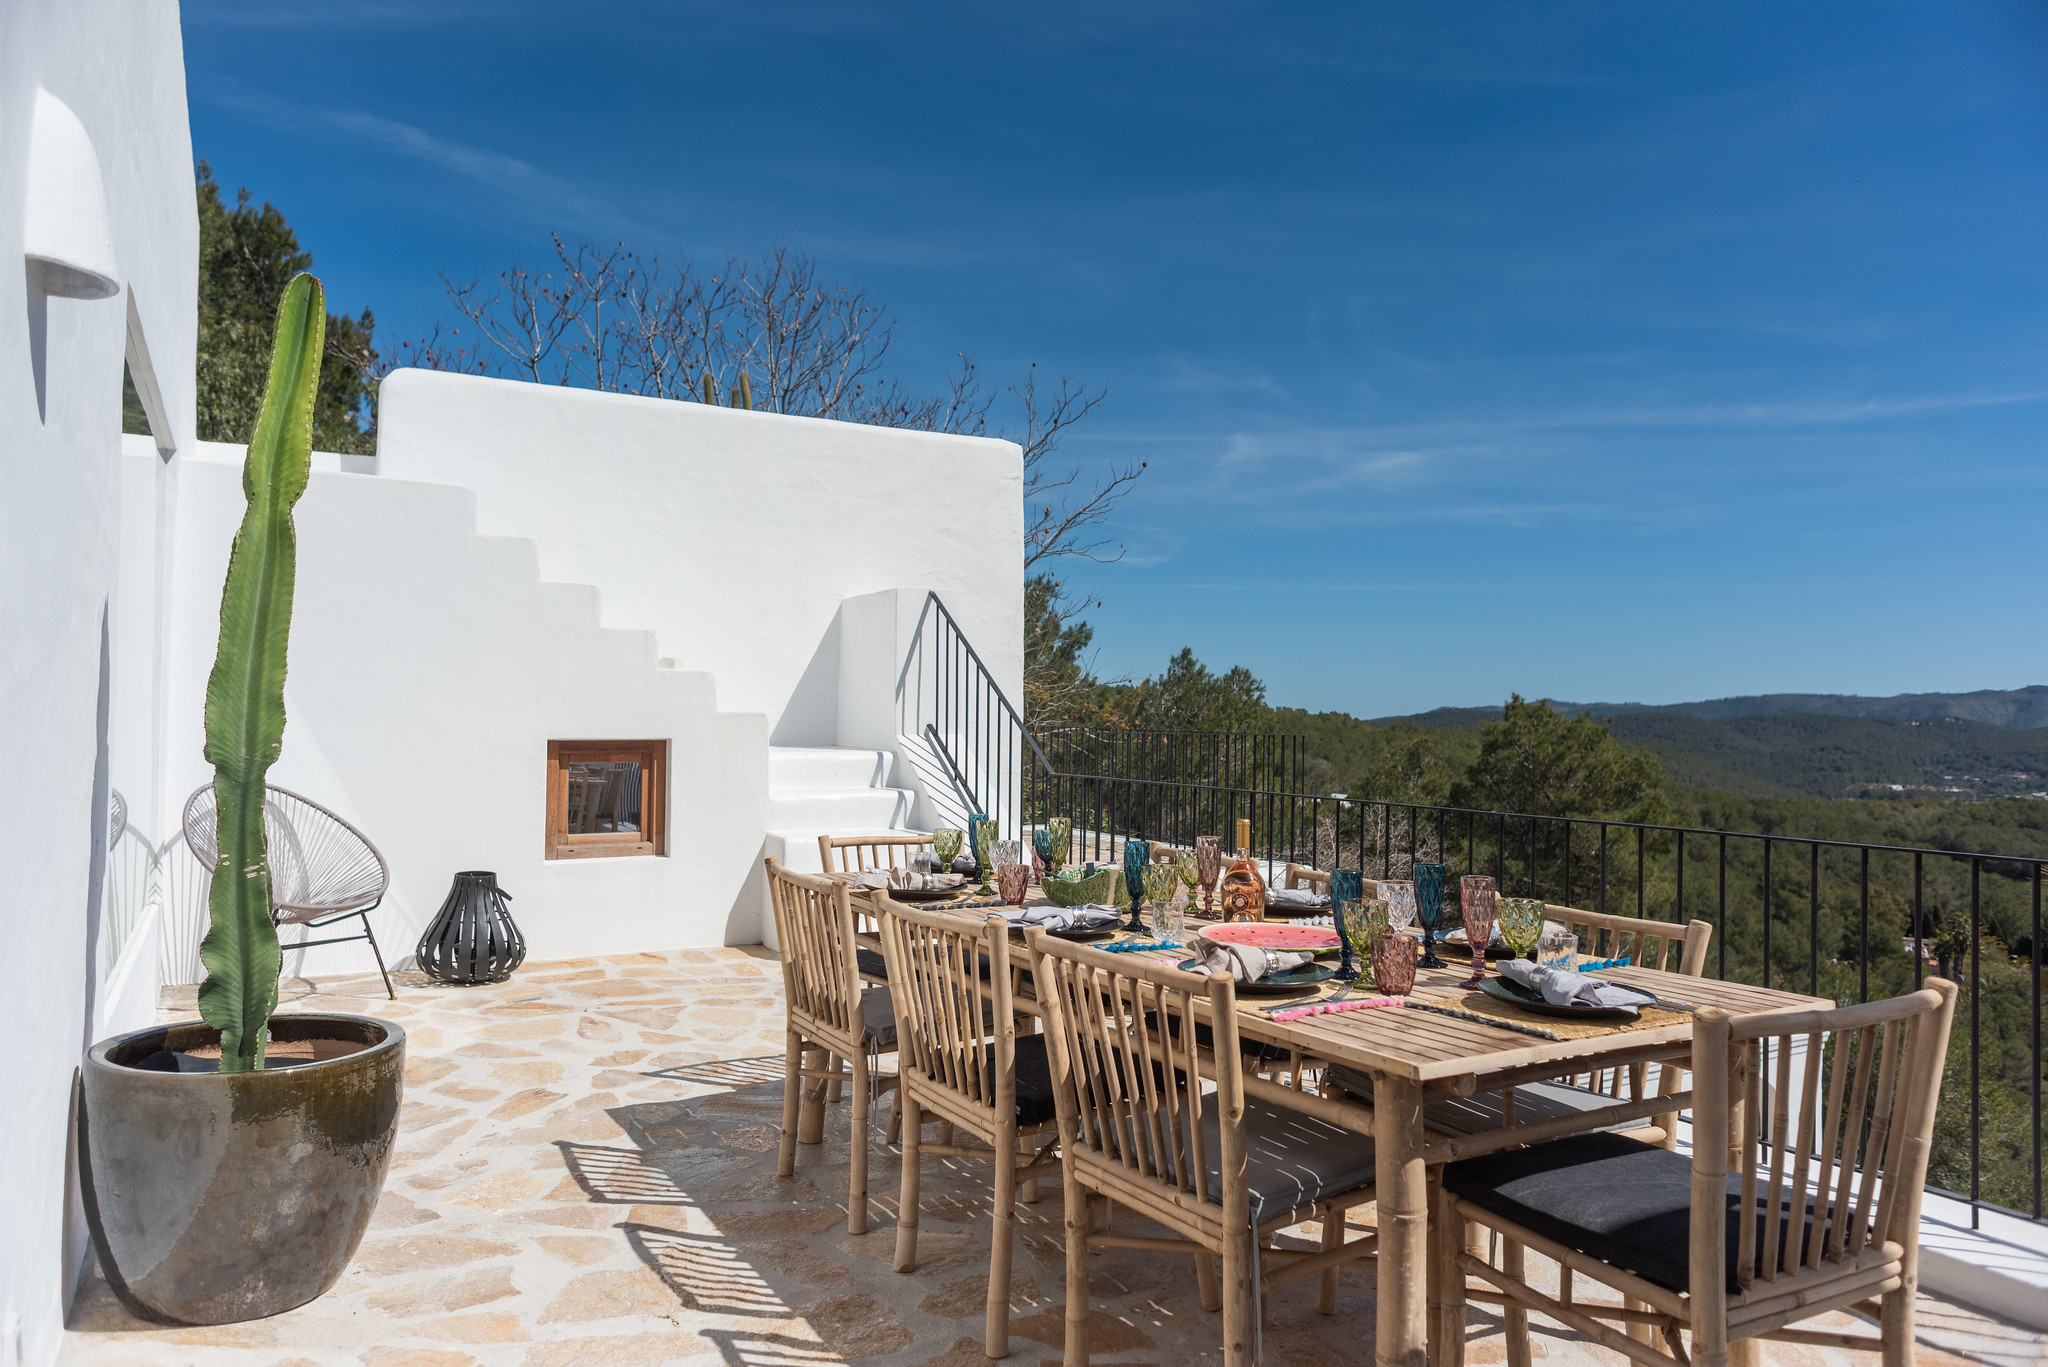 https://www.white-ibiza.com/wp-content/uploads/2020/05/white-ibiza-villas-can-cactus-outside-dining.jpg